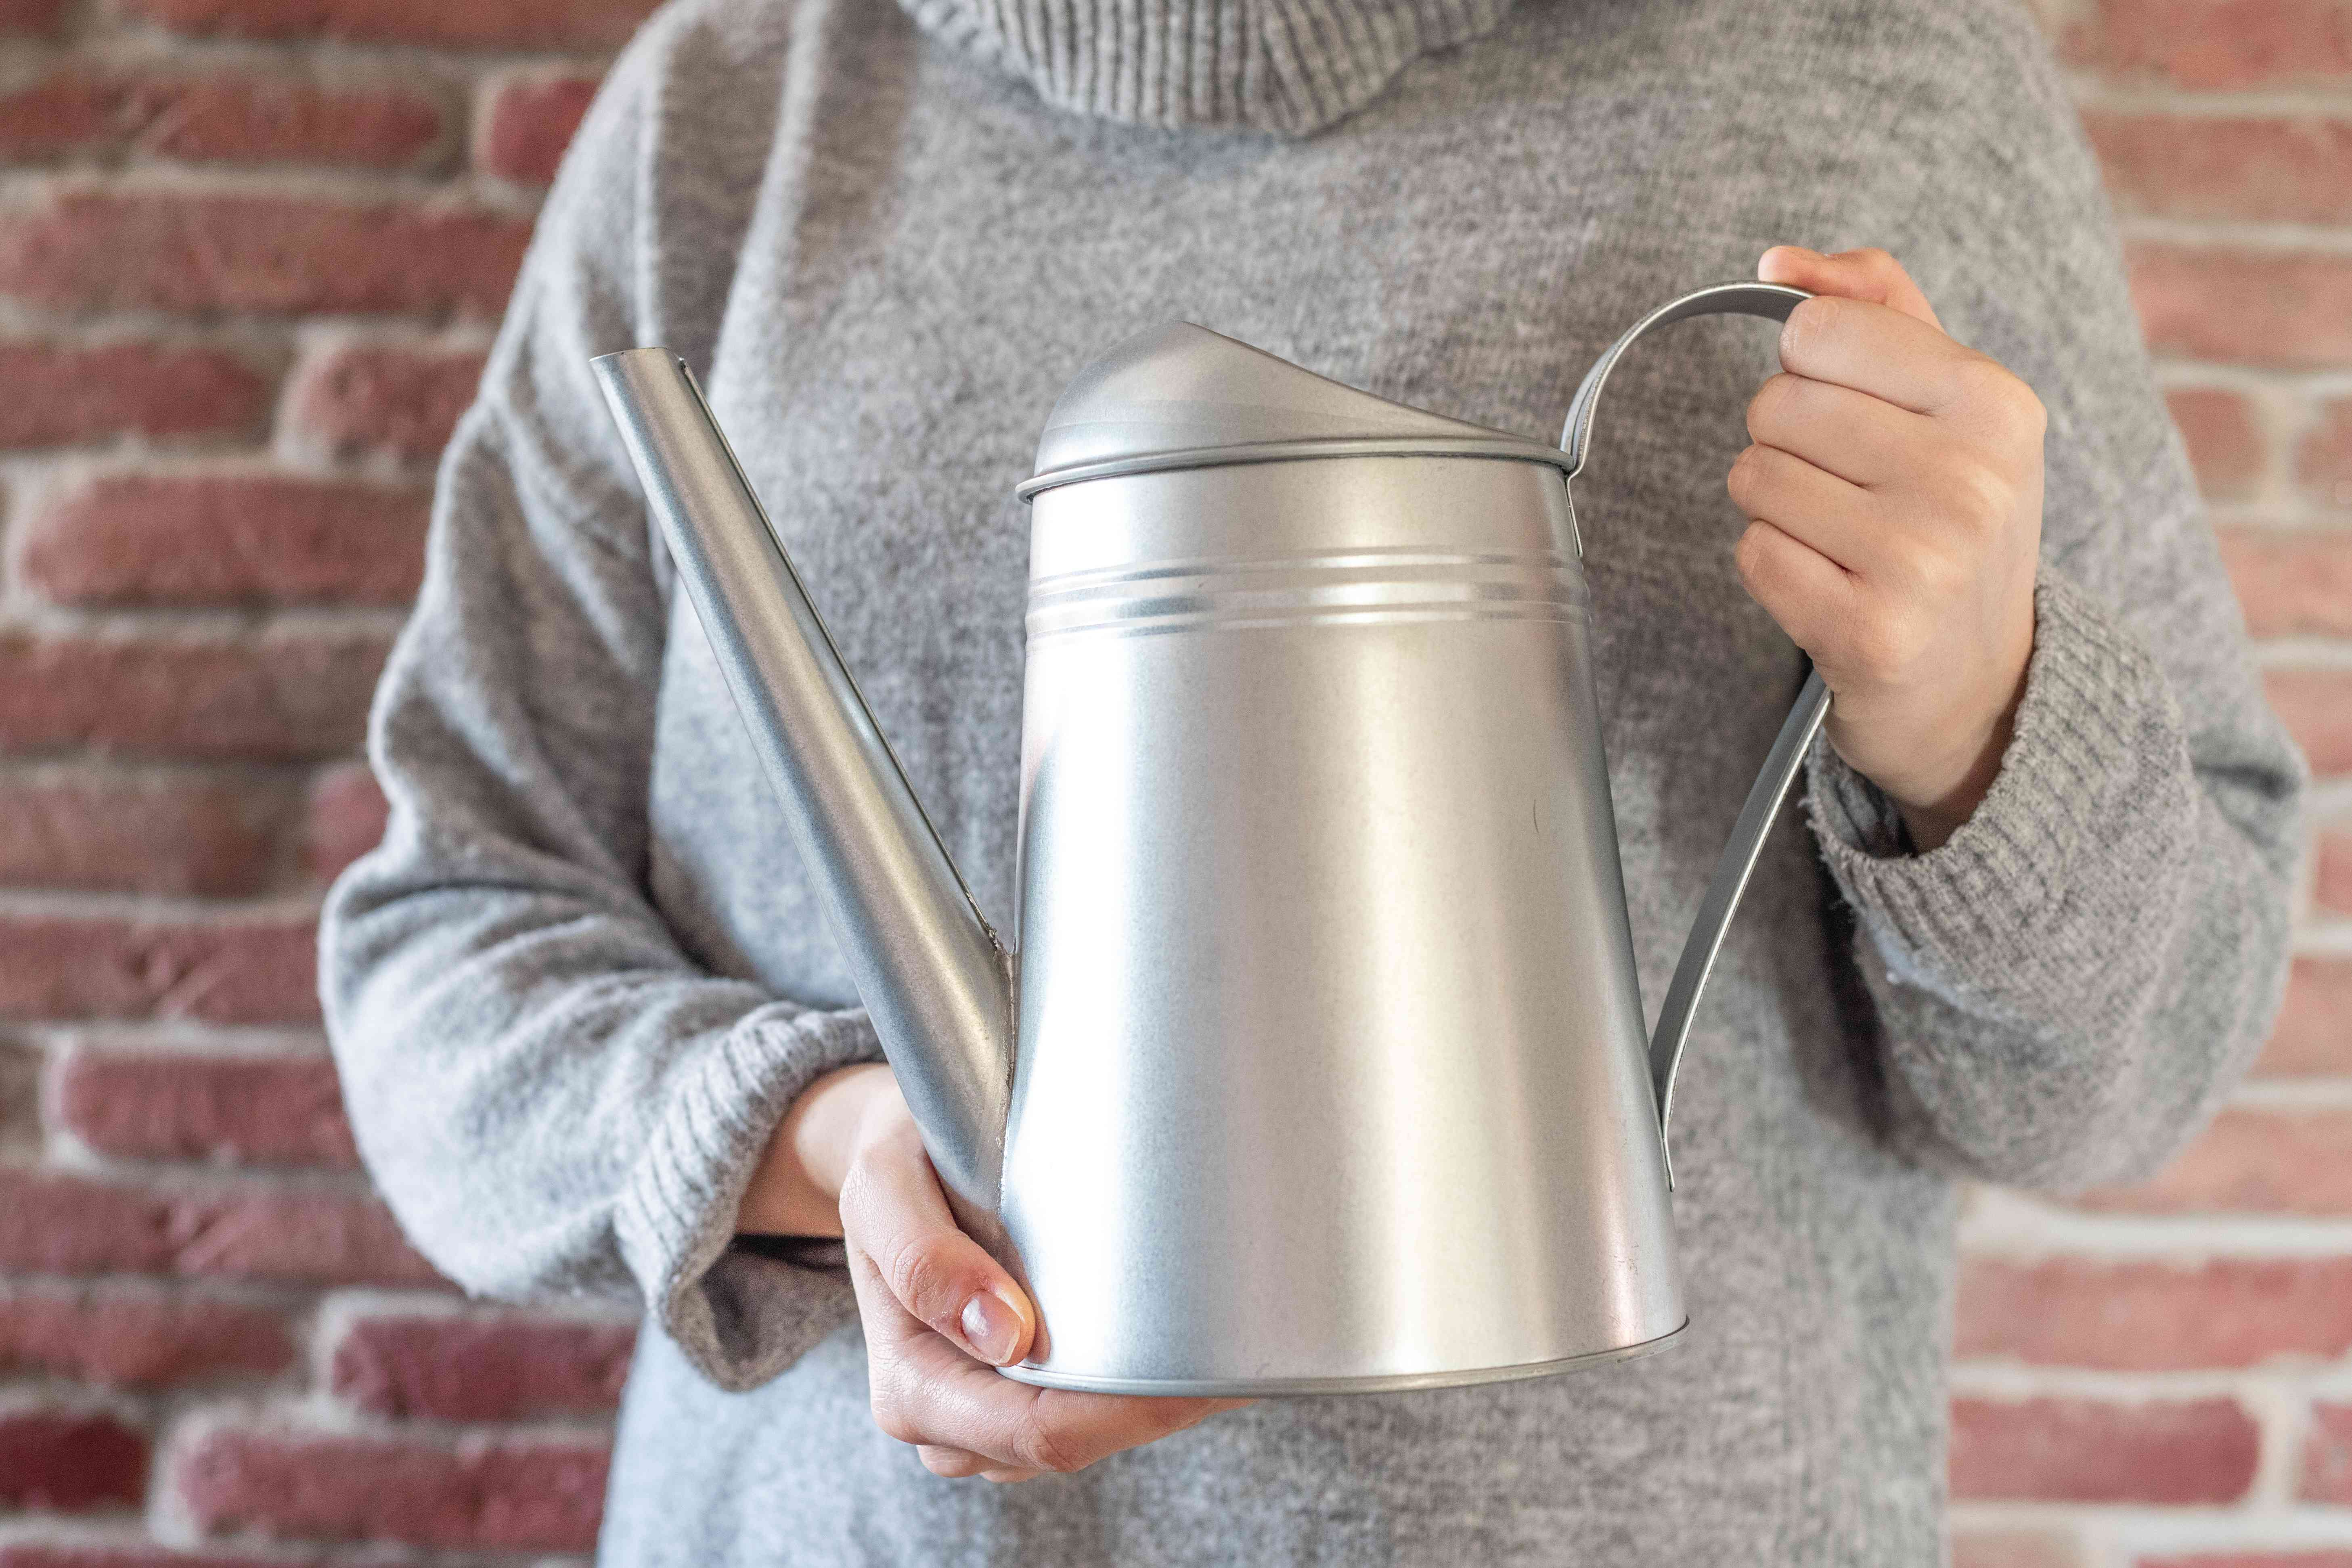 person in gray sweater faces camera cradling metal watering can